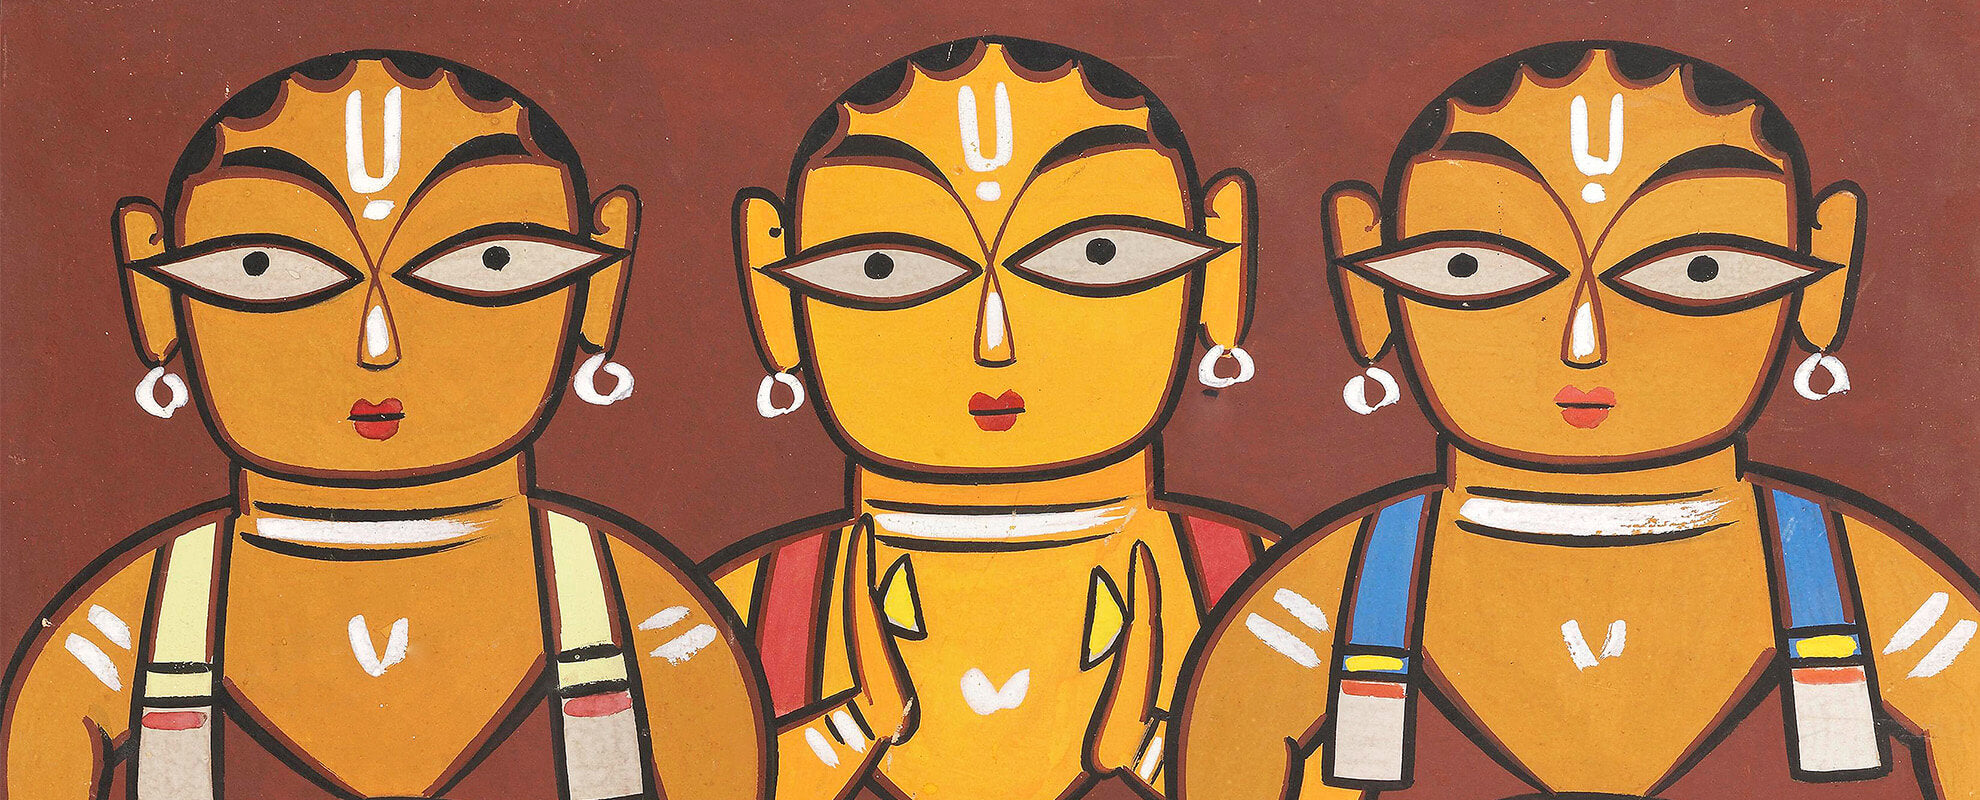 Indian Art — Indian Pichwai Painting | Buy Posters, Frames, Canvas, Digital Art & Large Size Prints